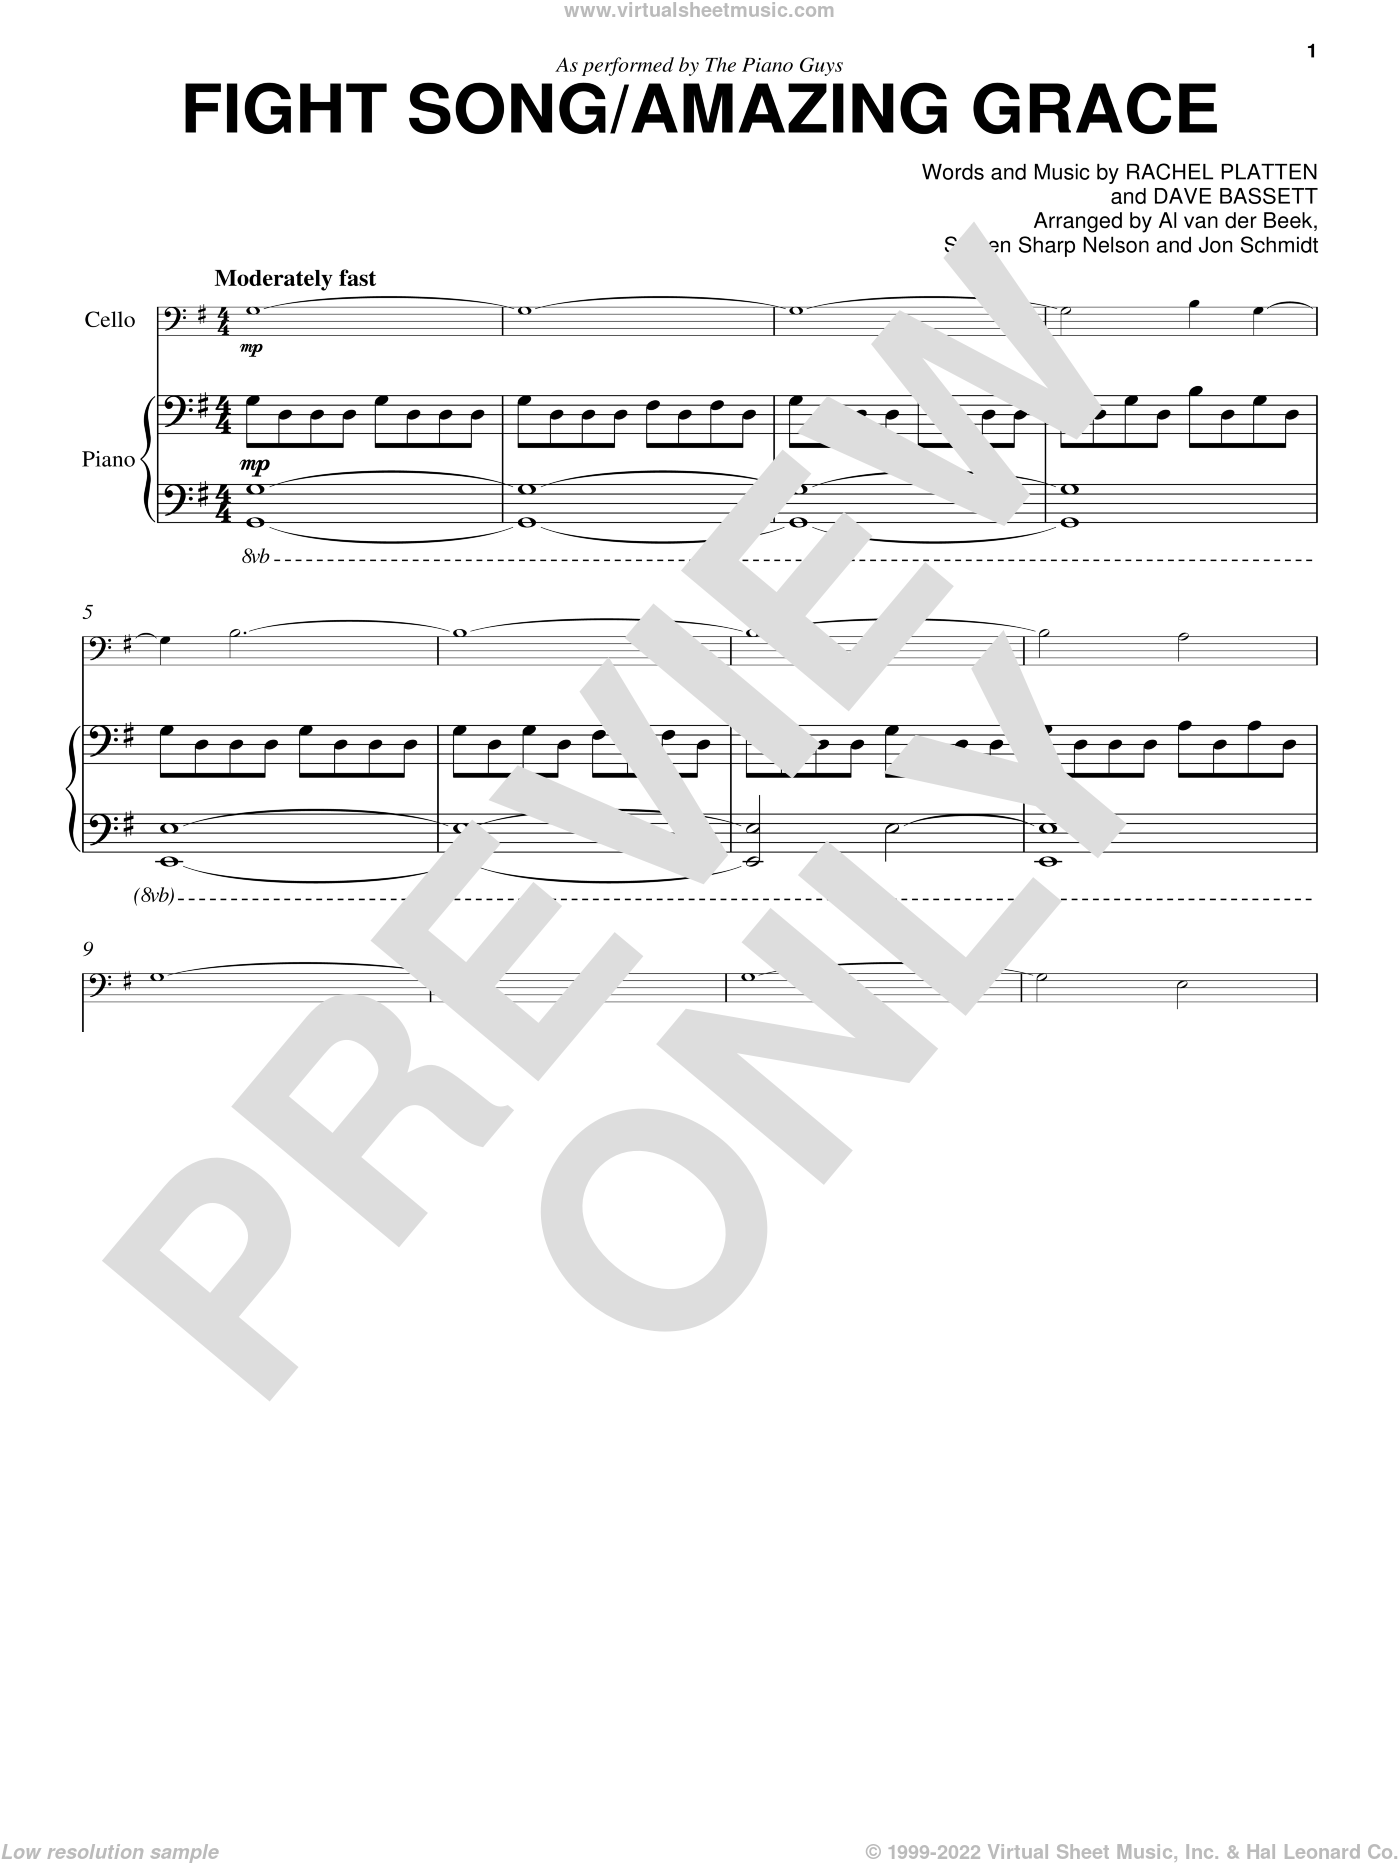 Fight Song/Amazing Grace sheet music for cello and piano by The Piano Guys, Dave Bassett and Rachel Platten, intermediate skill level